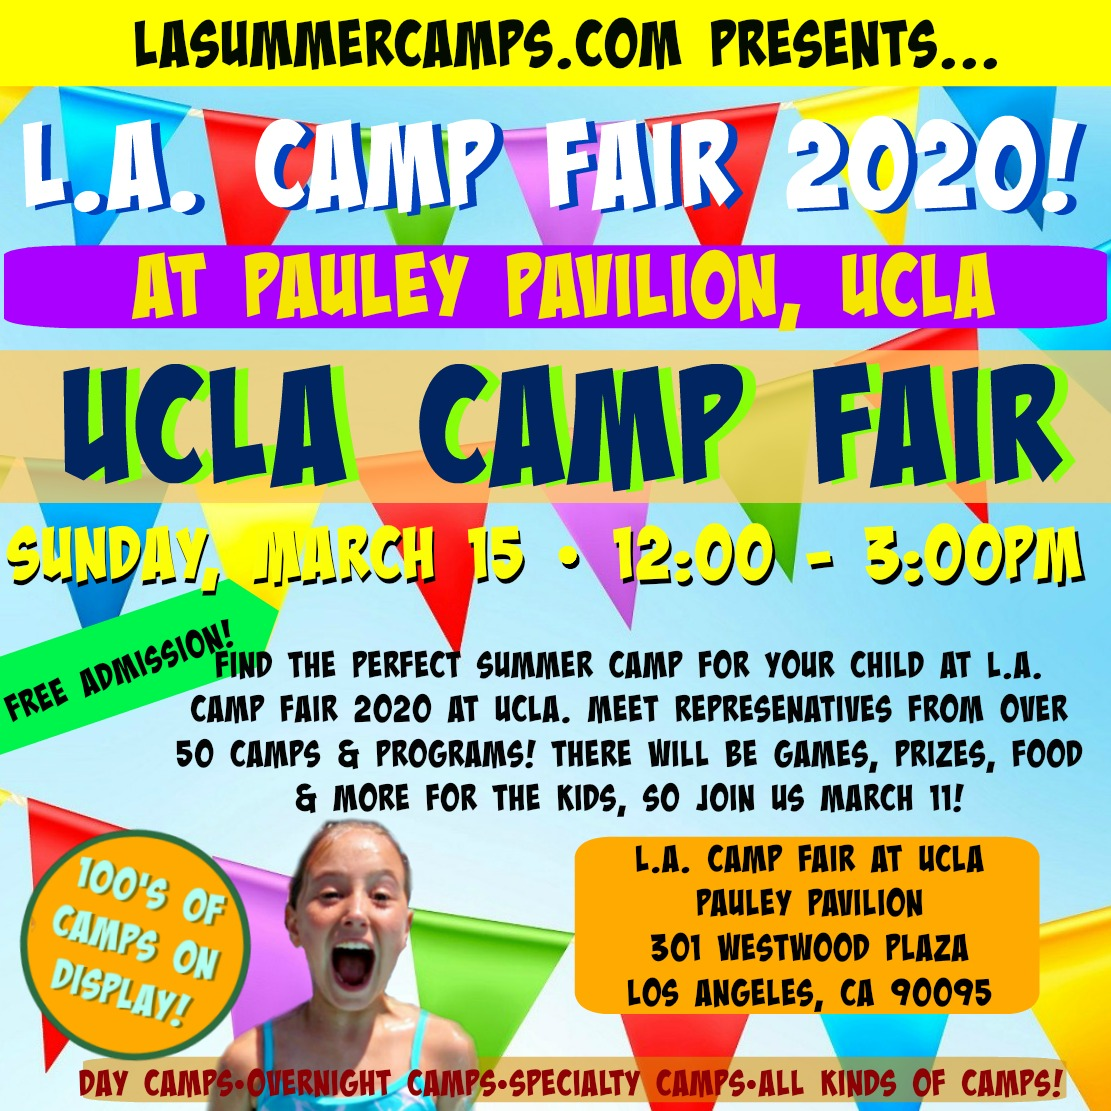 Square image promoting L.A. Camp Fair 2020 at UCLA on Sunday, March 15, 2020